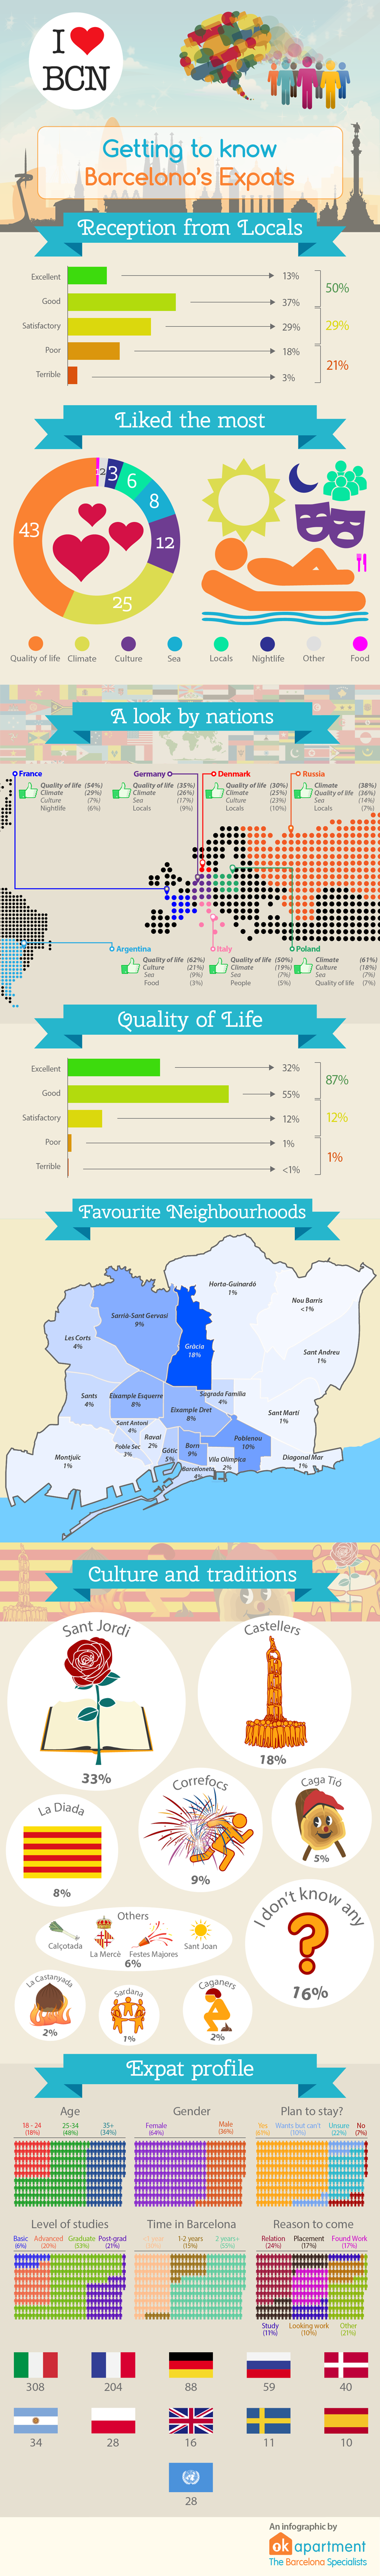 What do expats like about Barcelona - Complete infographic